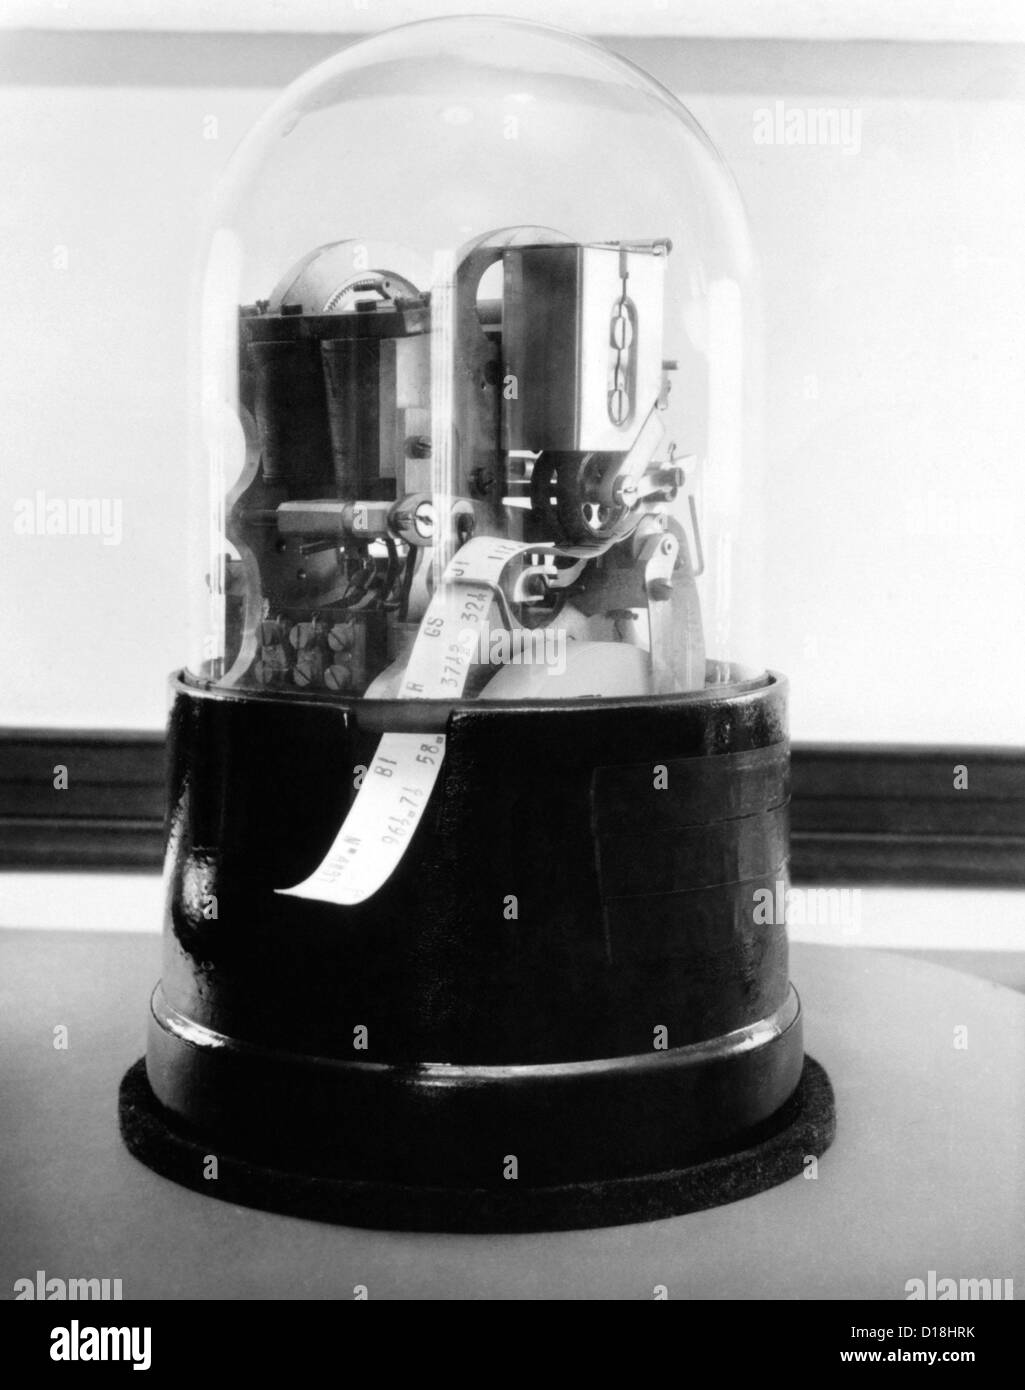 Classic 1920's stock ticker with a glass dome. Stock tickers were specialized telegraphs that conveying stock prices. Stock Photo